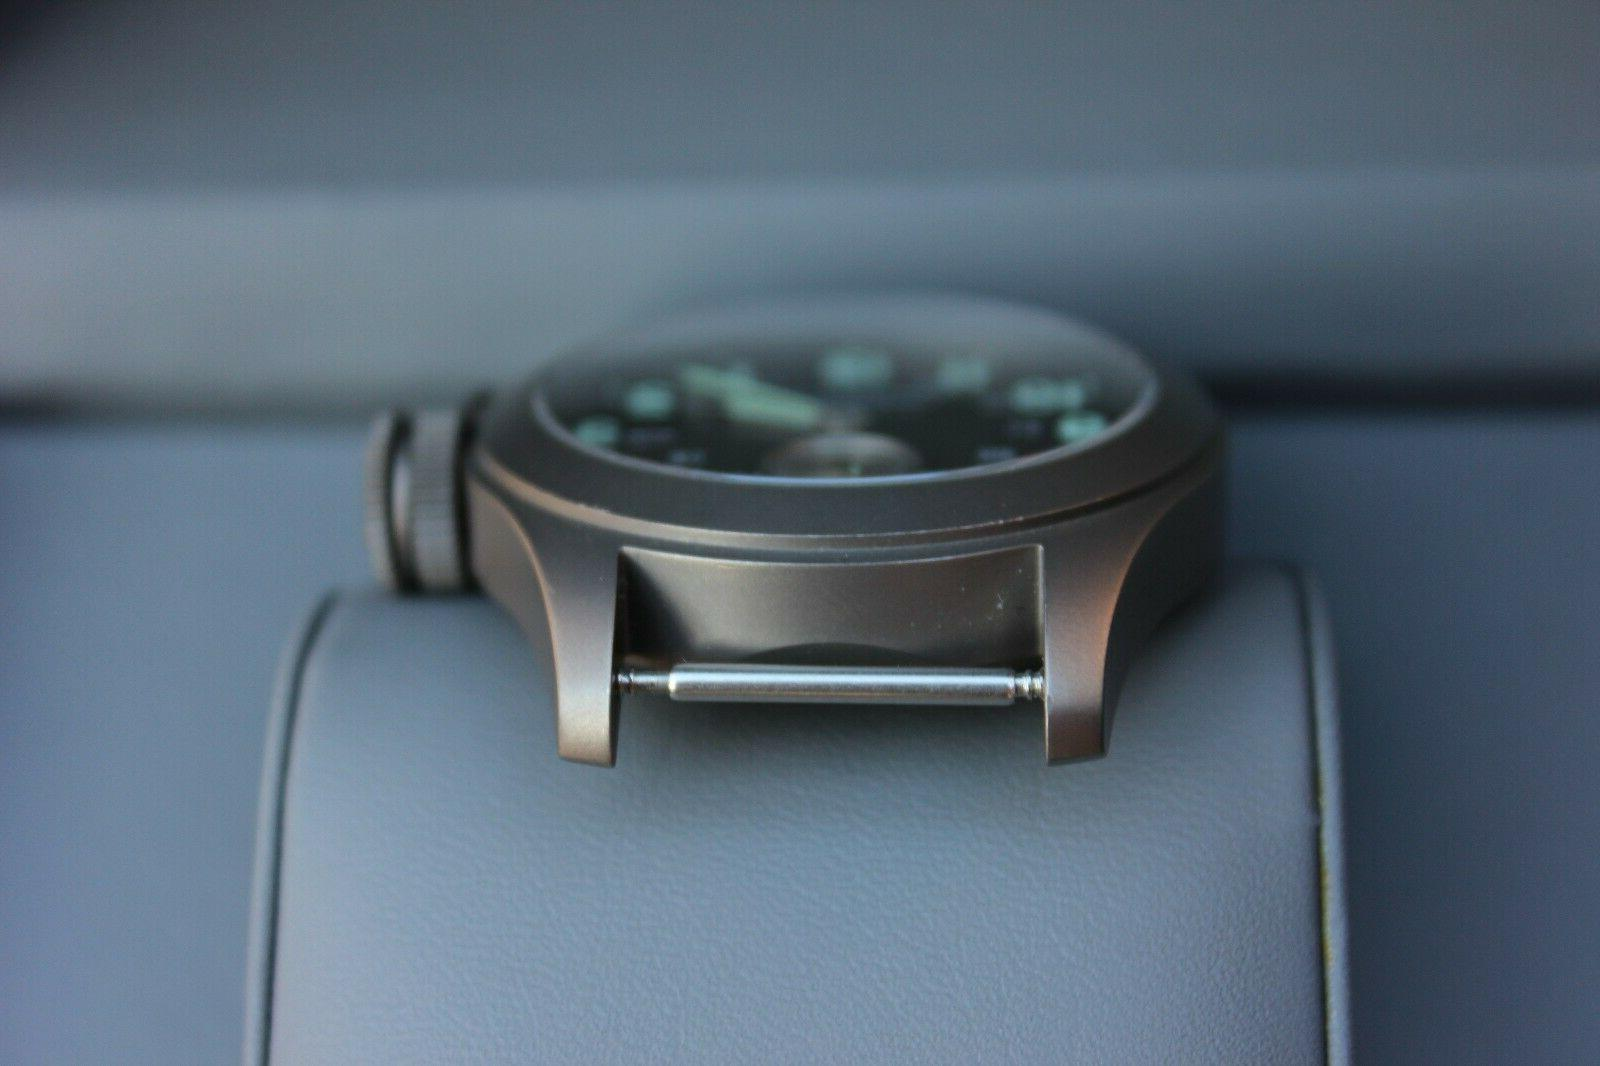 Hamilton automatic 200m complete with